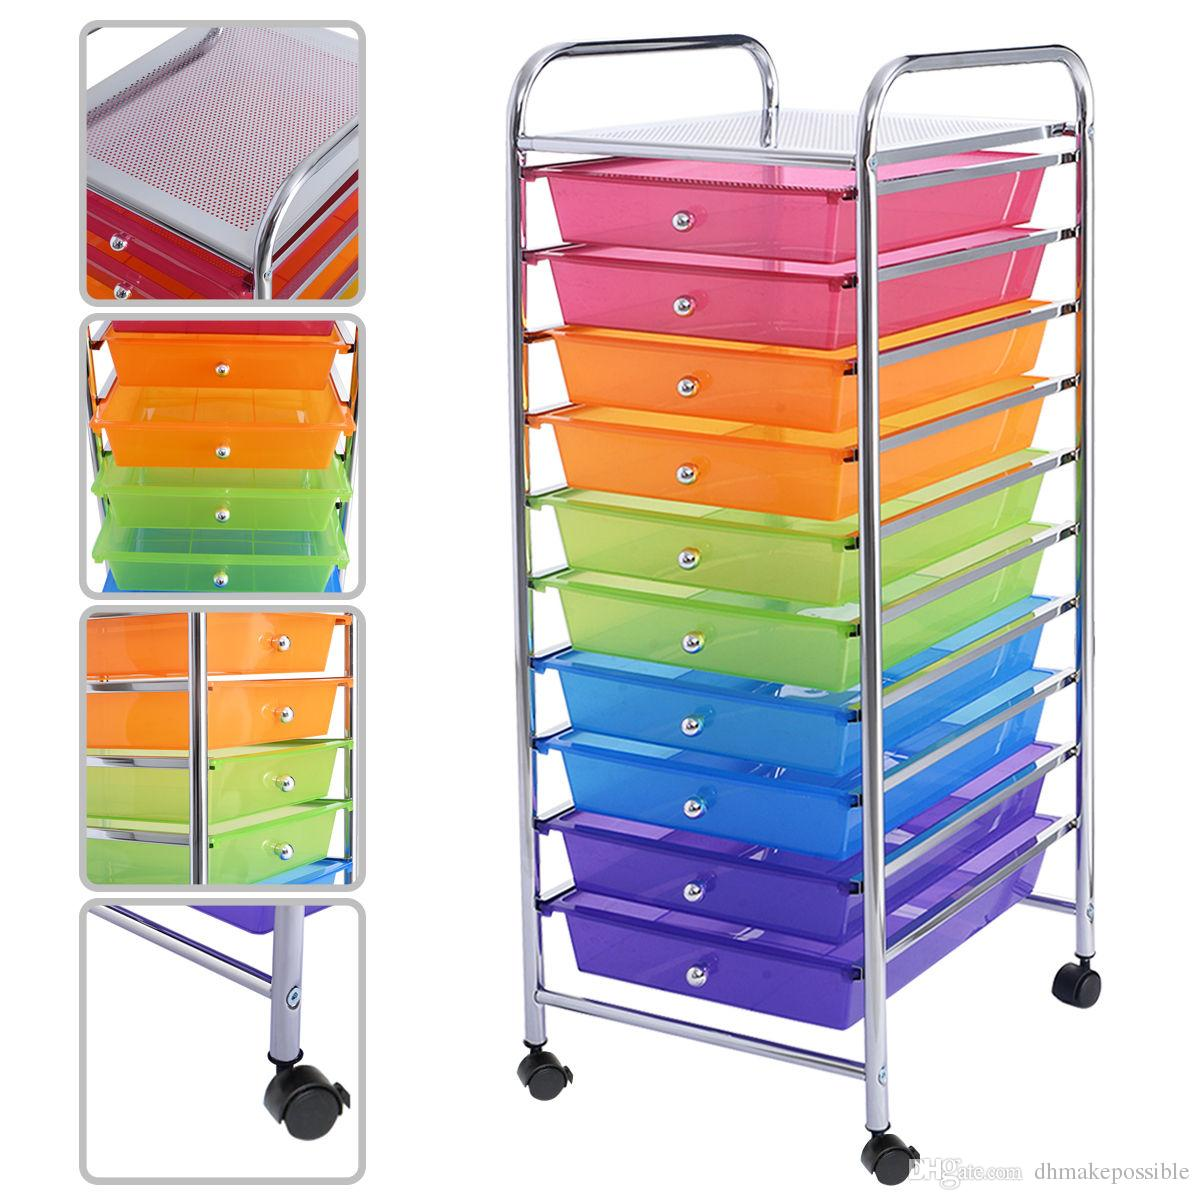 10 Drawer Rolling Storage Cart For Scrapbook Paper In Office School Organizer Paper Storage Rolling Cart Online with $34.26/Piece on Dhmakepossibleu0027s Store ...  sc 1 st  DHgate.com & 10 Drawer Rolling Storage Cart For Scrapbook Paper In Office School ...